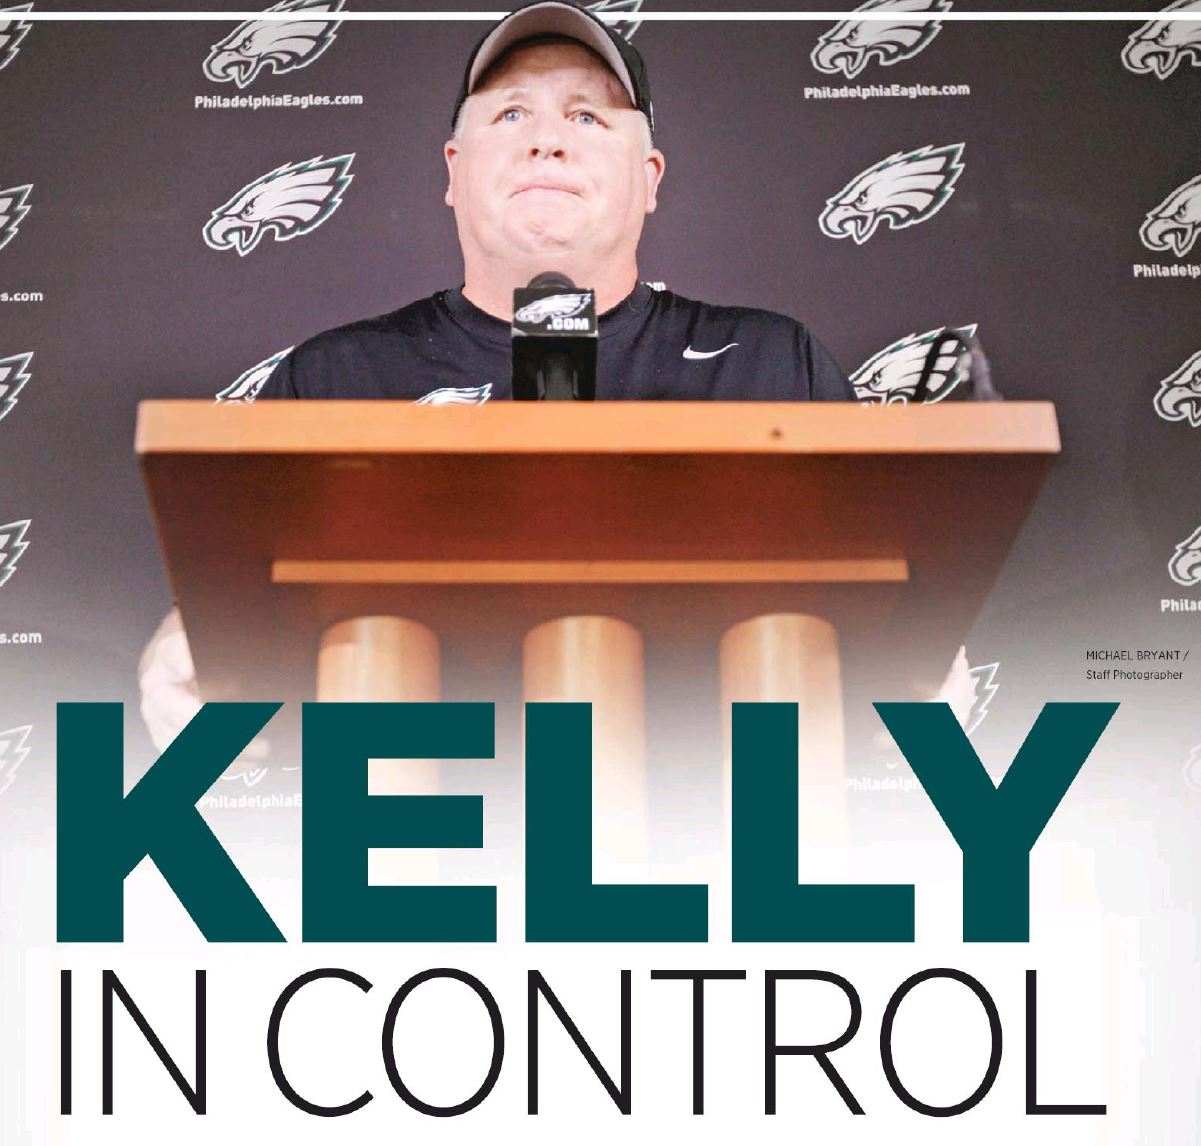 Chip Kelly and culture